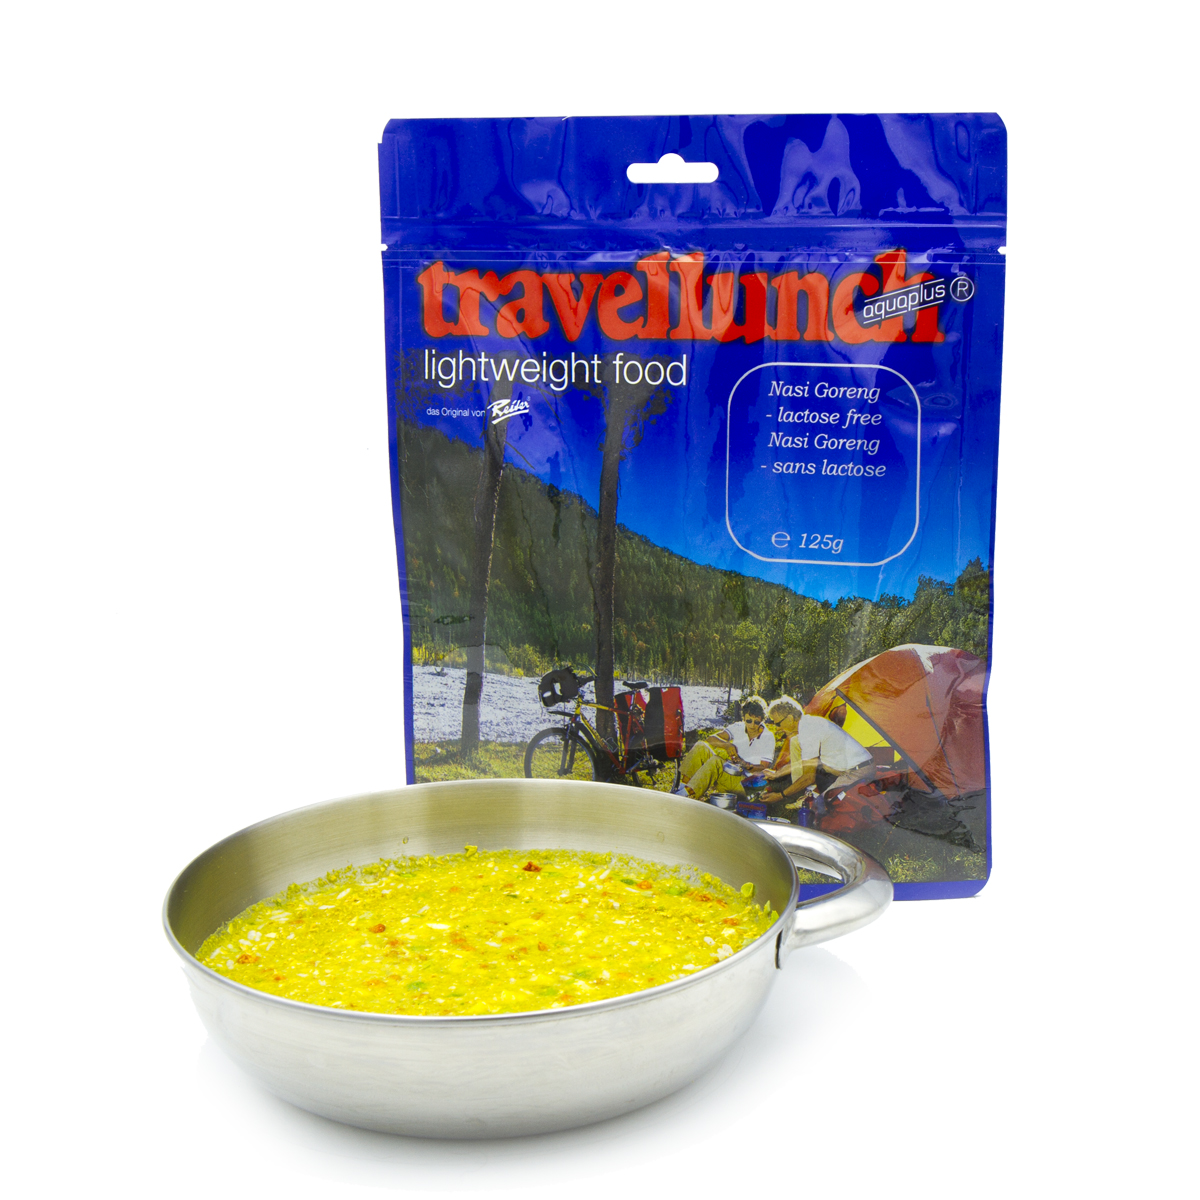 51132_travellunch-nasi_goreng_lac_free